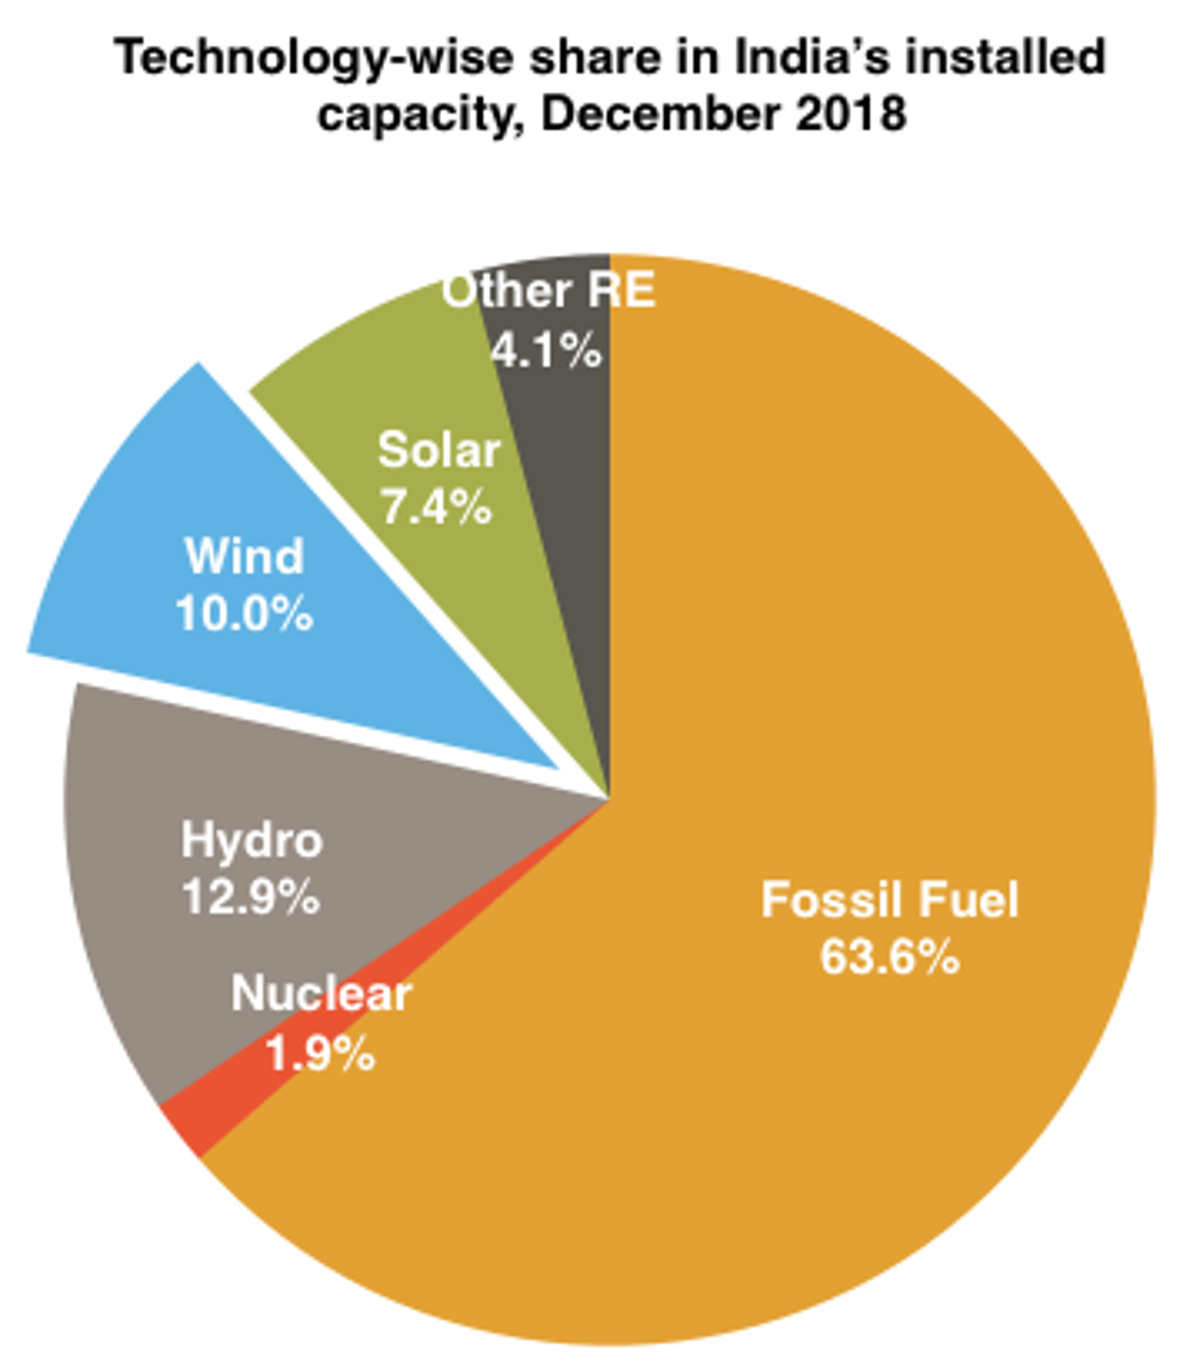 India's Wind Capacity Crosses 10% Share In Overall Installed Base